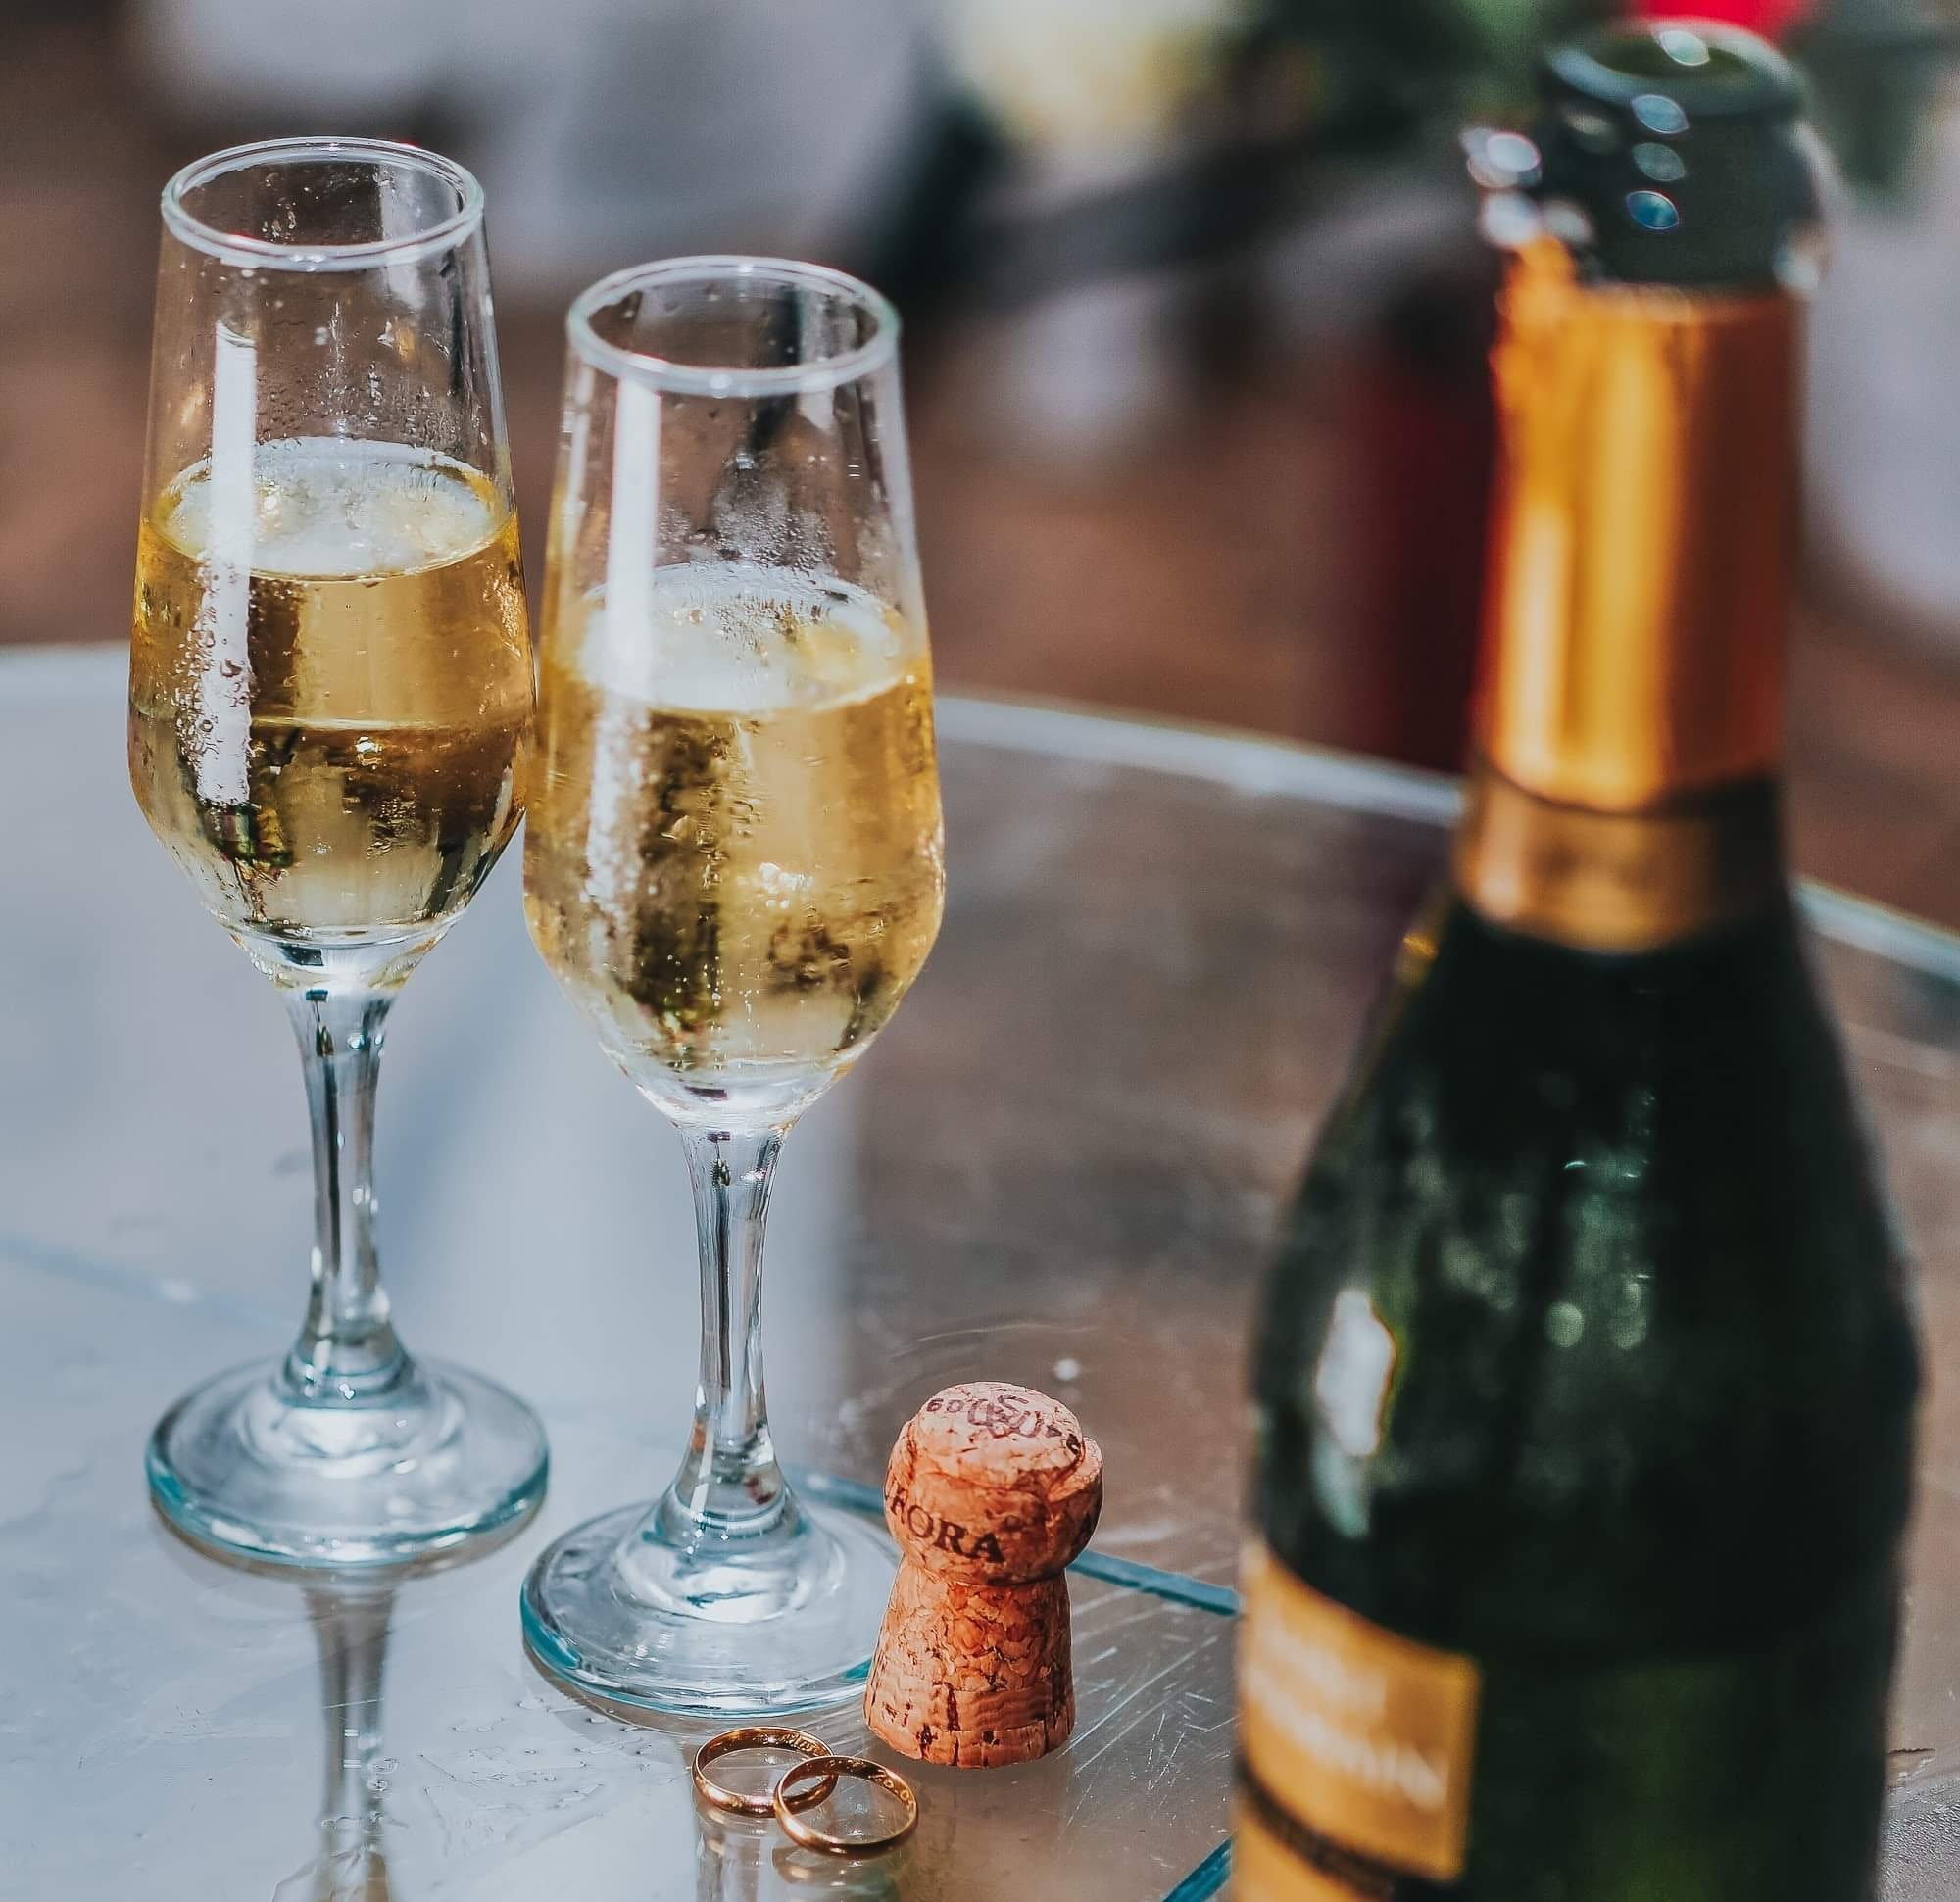 open-champagne-bottle-near-two-cocktail-glasses-1841506